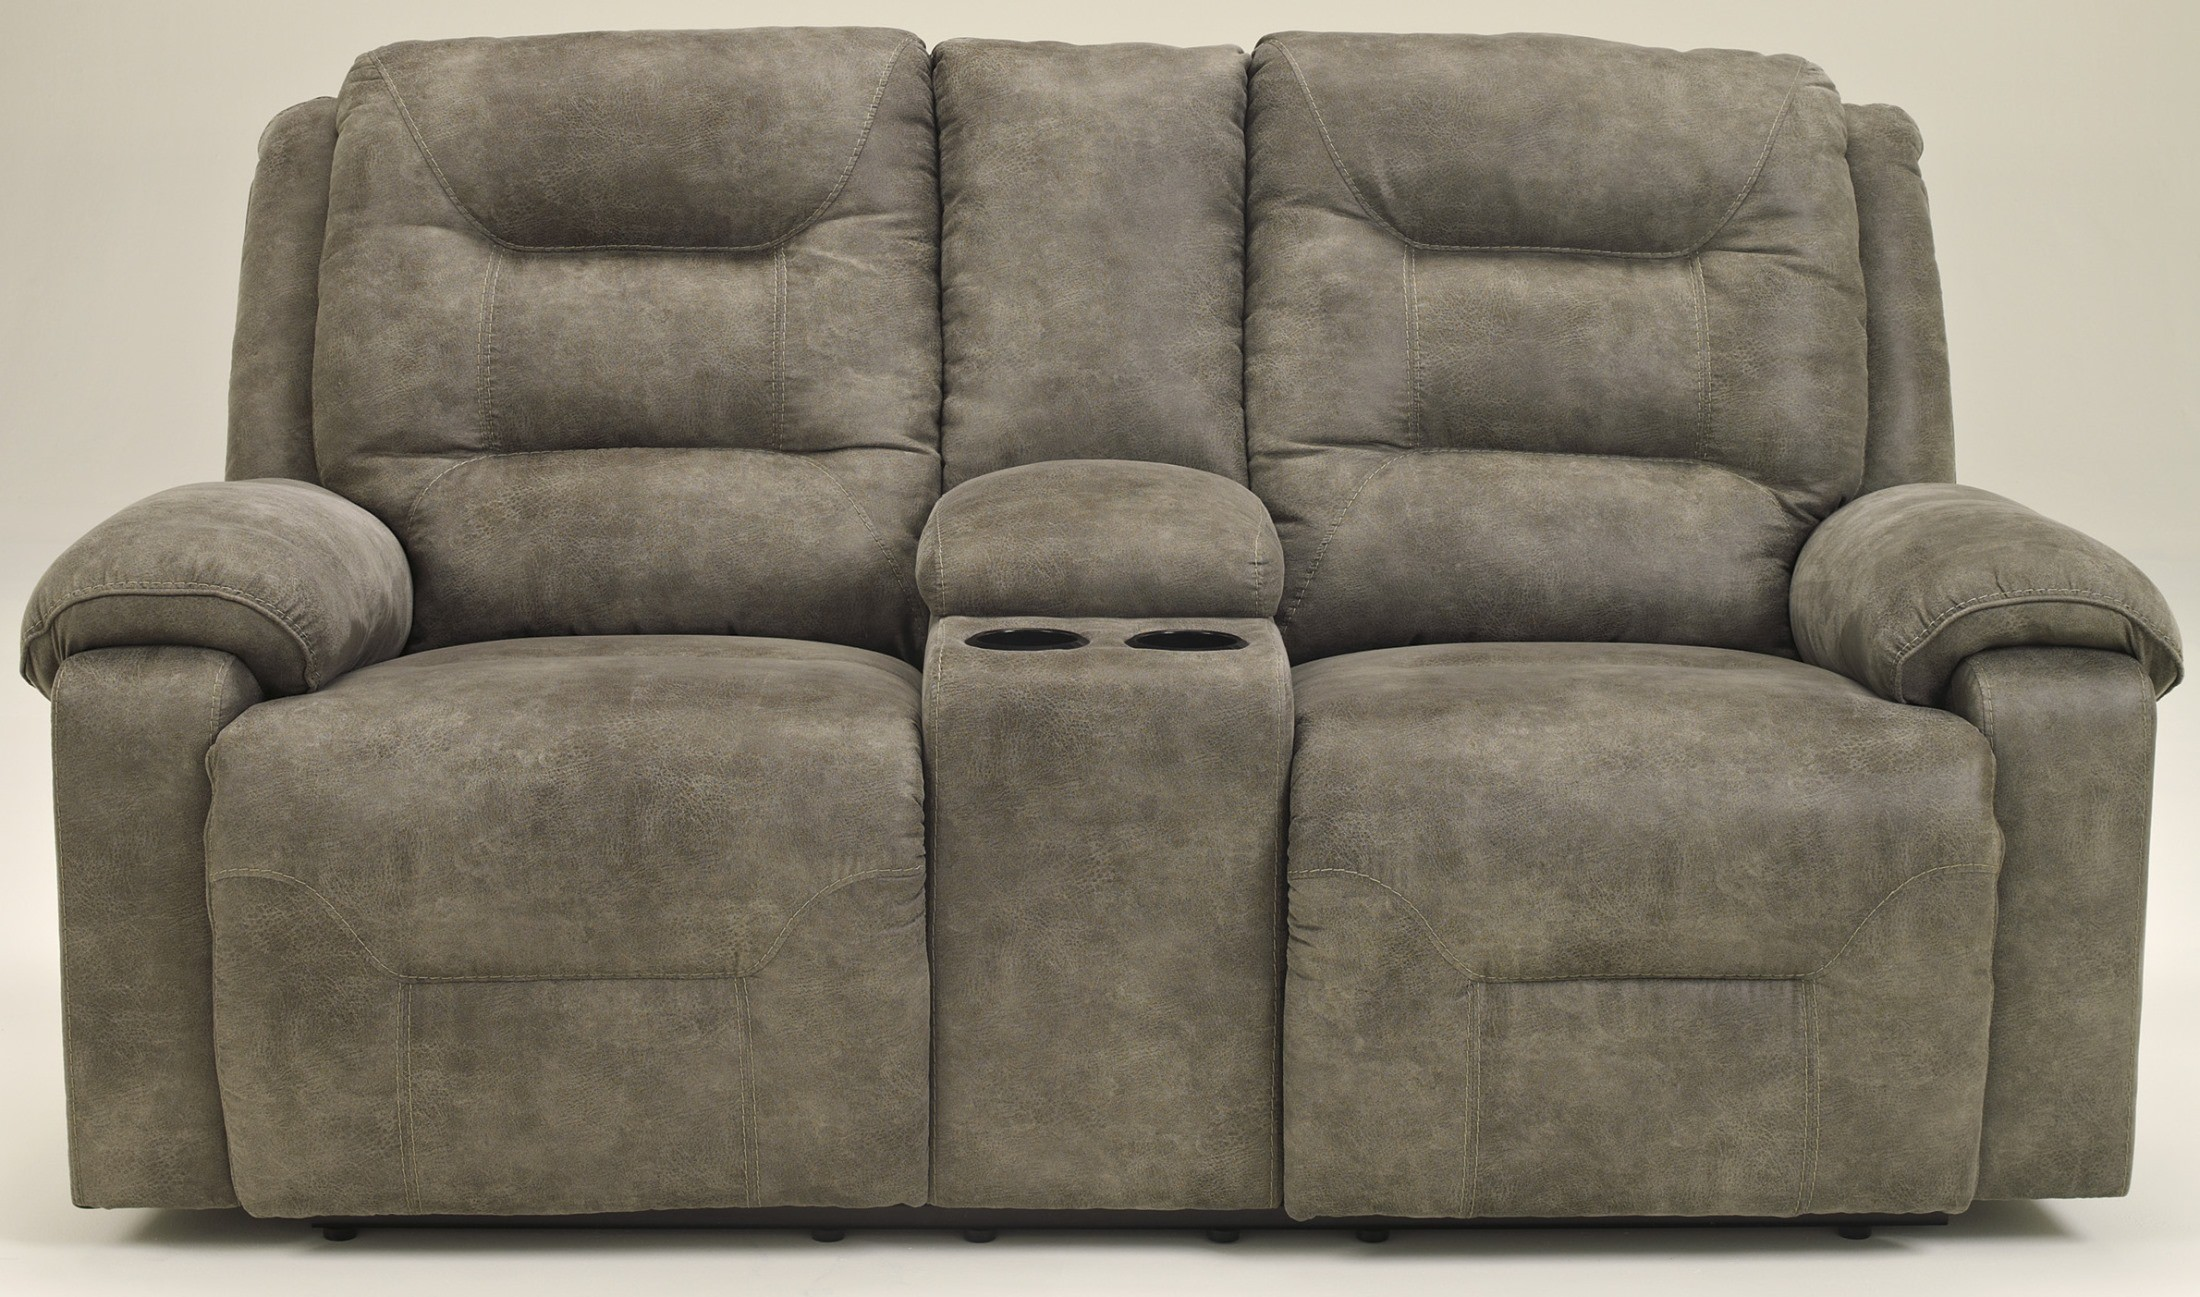 Rotation Smoke Double Reclining Loveseat With Console From Ashley 9750194 Coleman Furniture